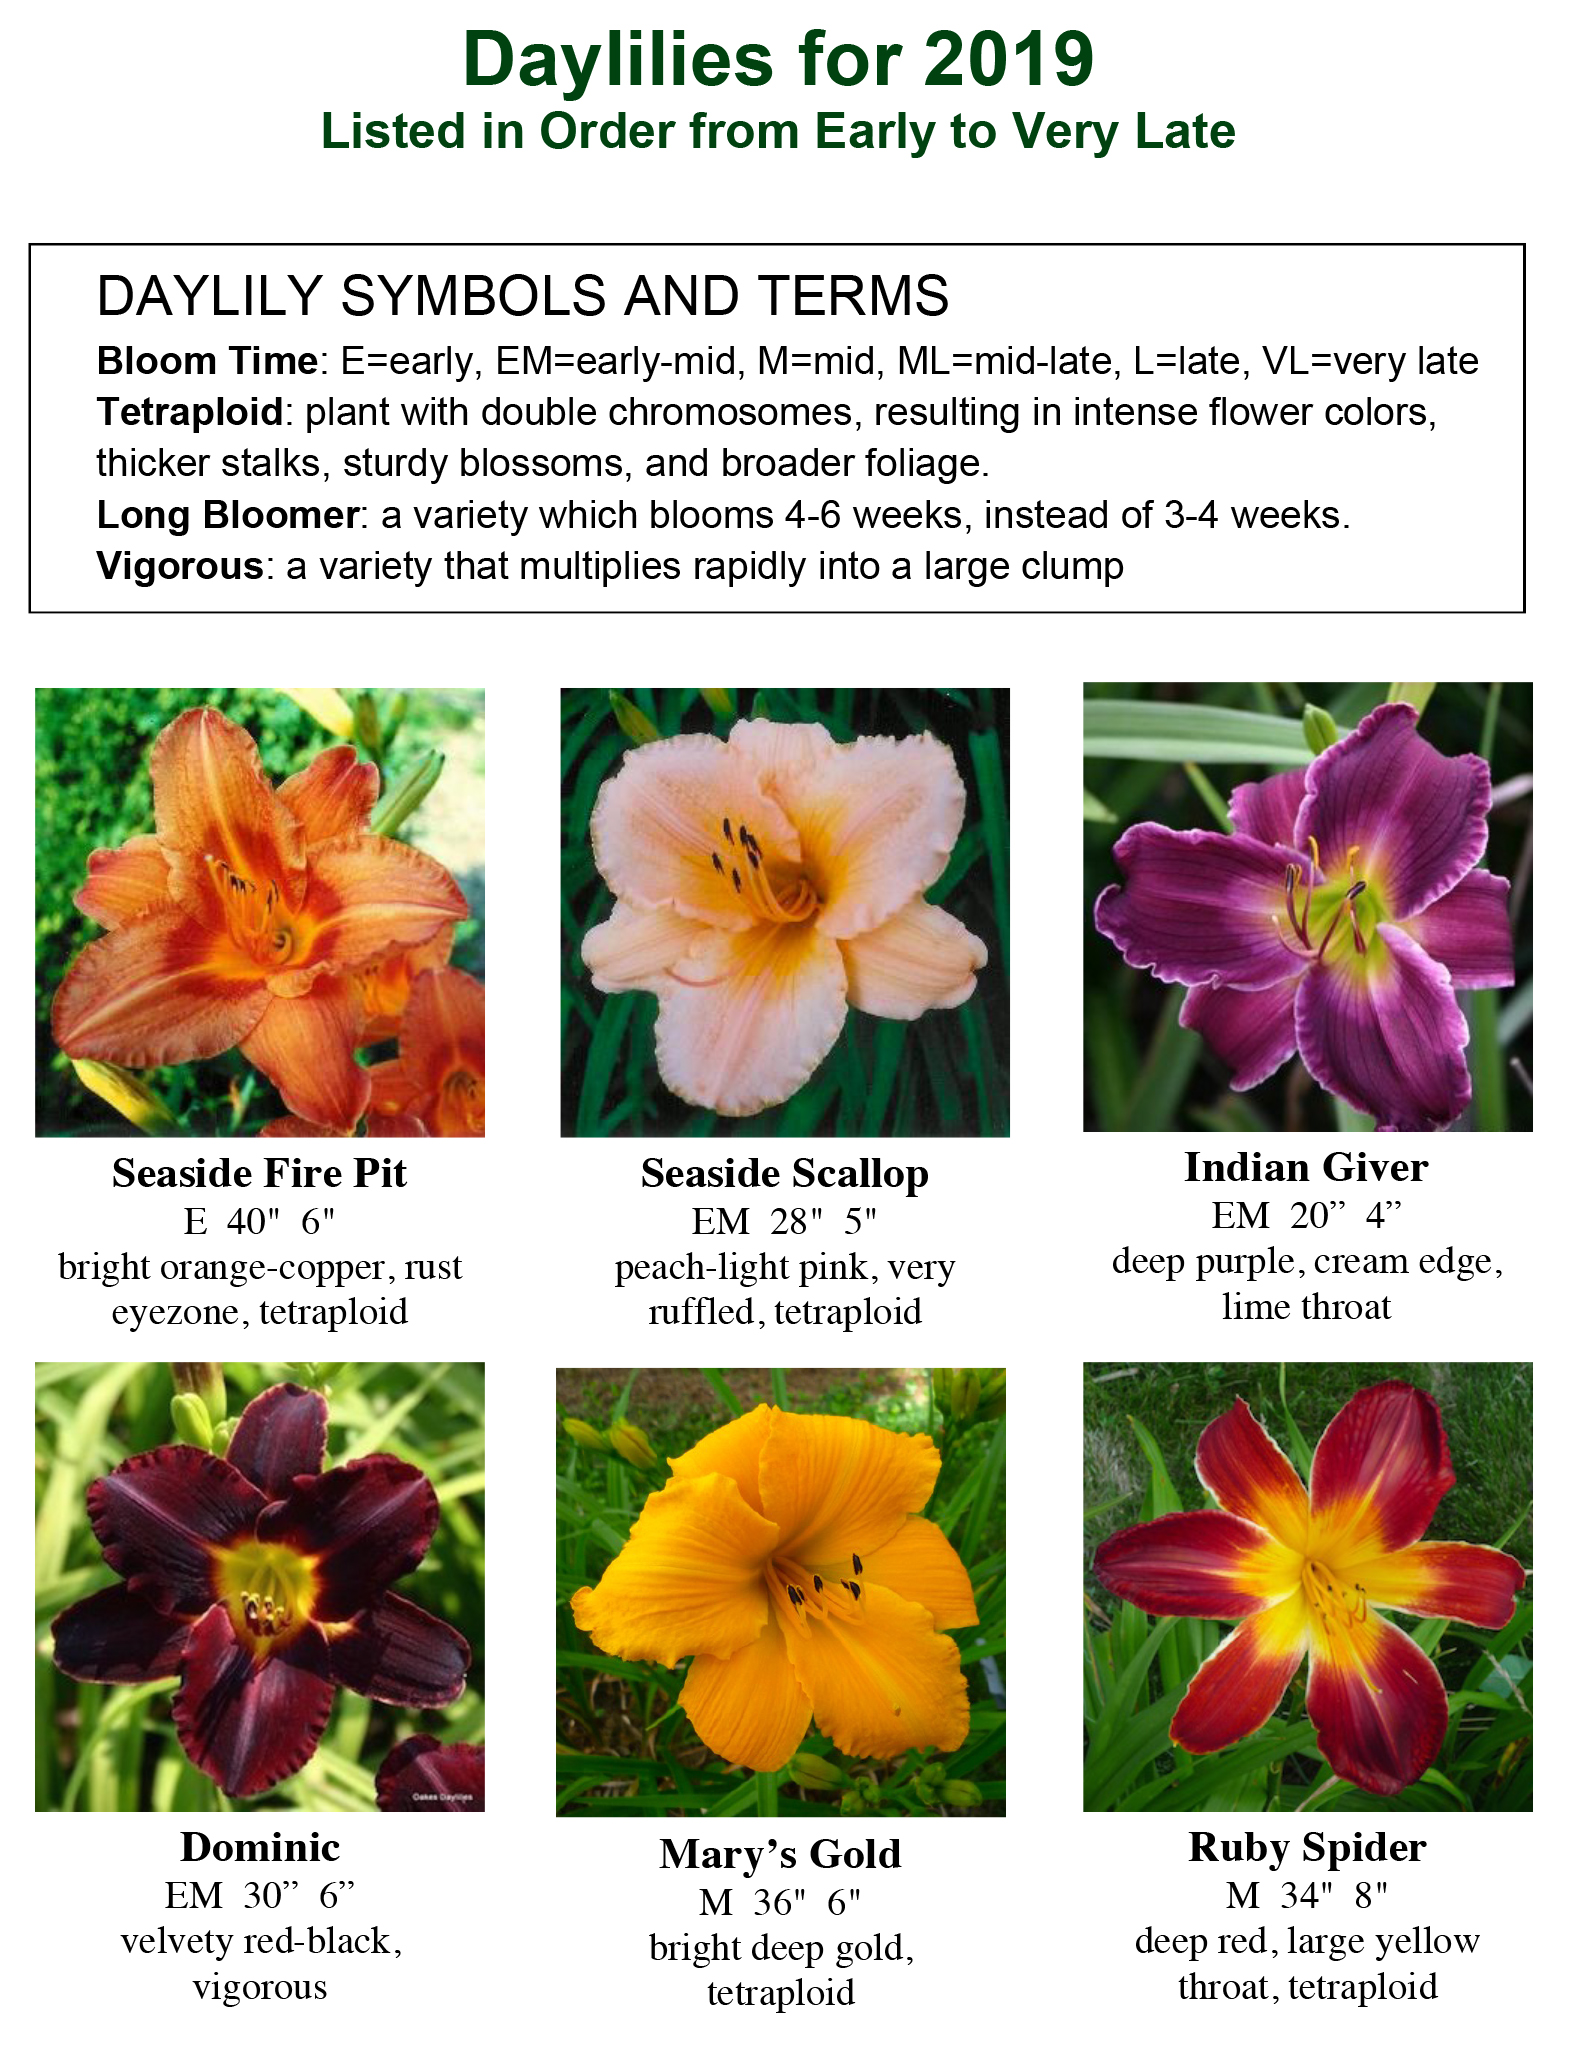 Daylily photos 2019 VG-1.jpg